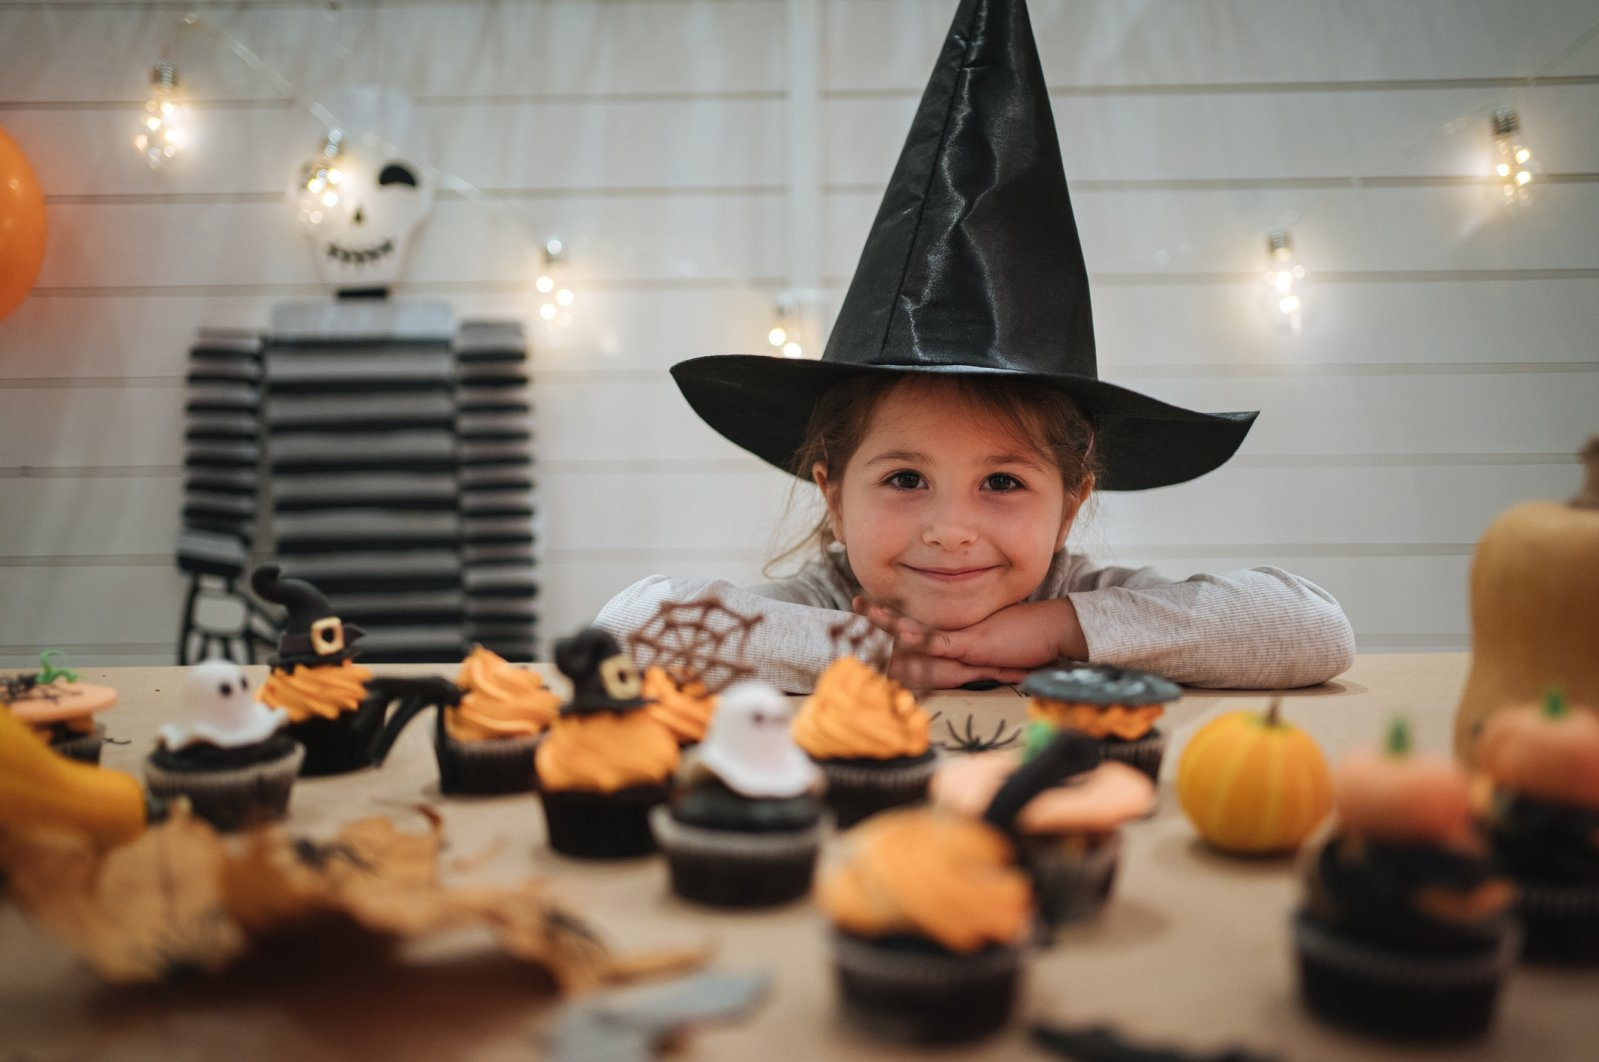 Instead of buying store-bought candy, why not try making some fun and easy Halloween treats with your kids?